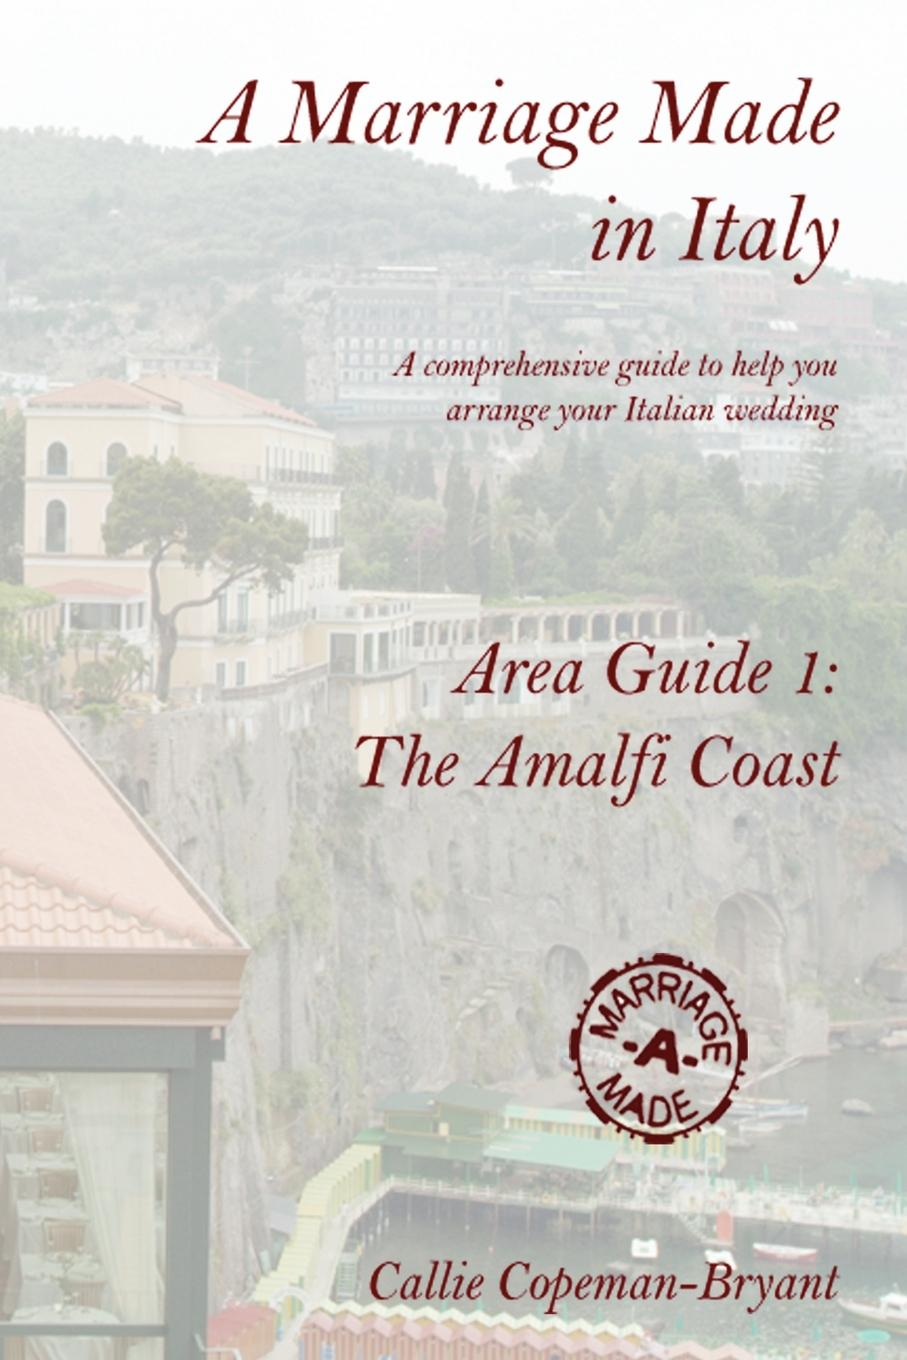 Callie Copeman-Bryant A Marriage Made in Italy - Area Guide 1. The Amalfi Coast